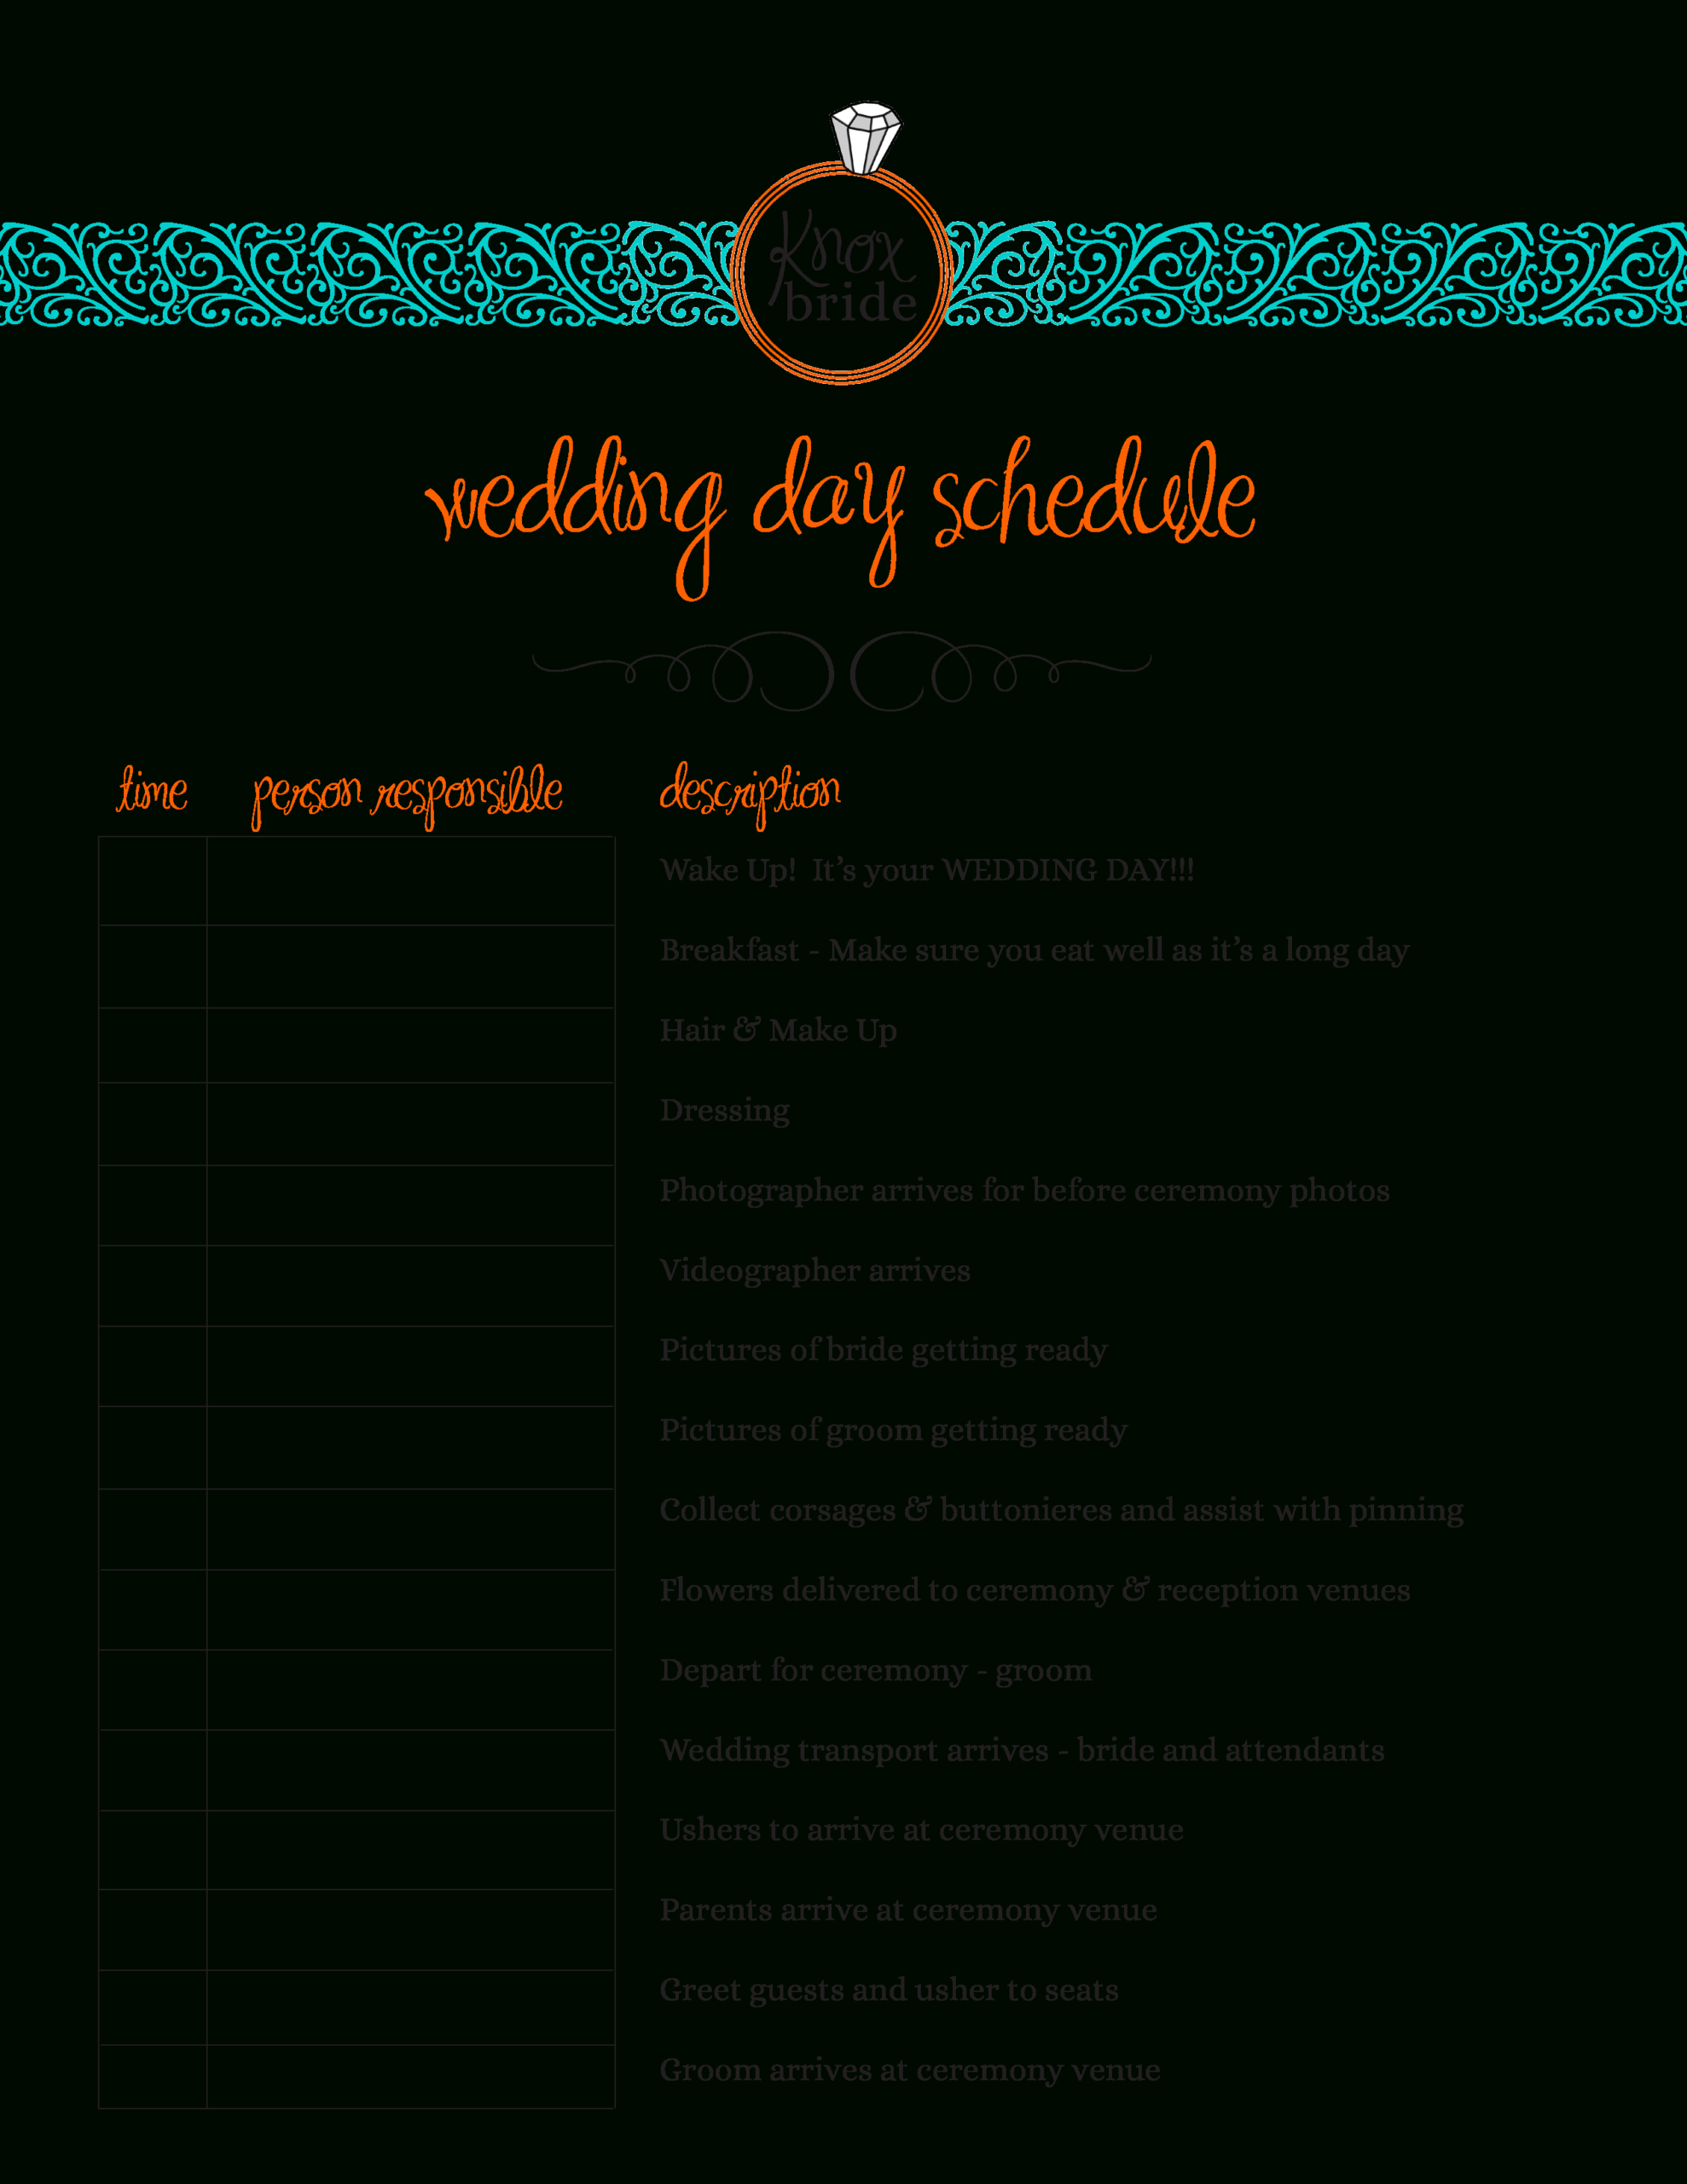 Event Agenda Outline  How To Create An Event Agenda throughout Event Planning Itinerary Template